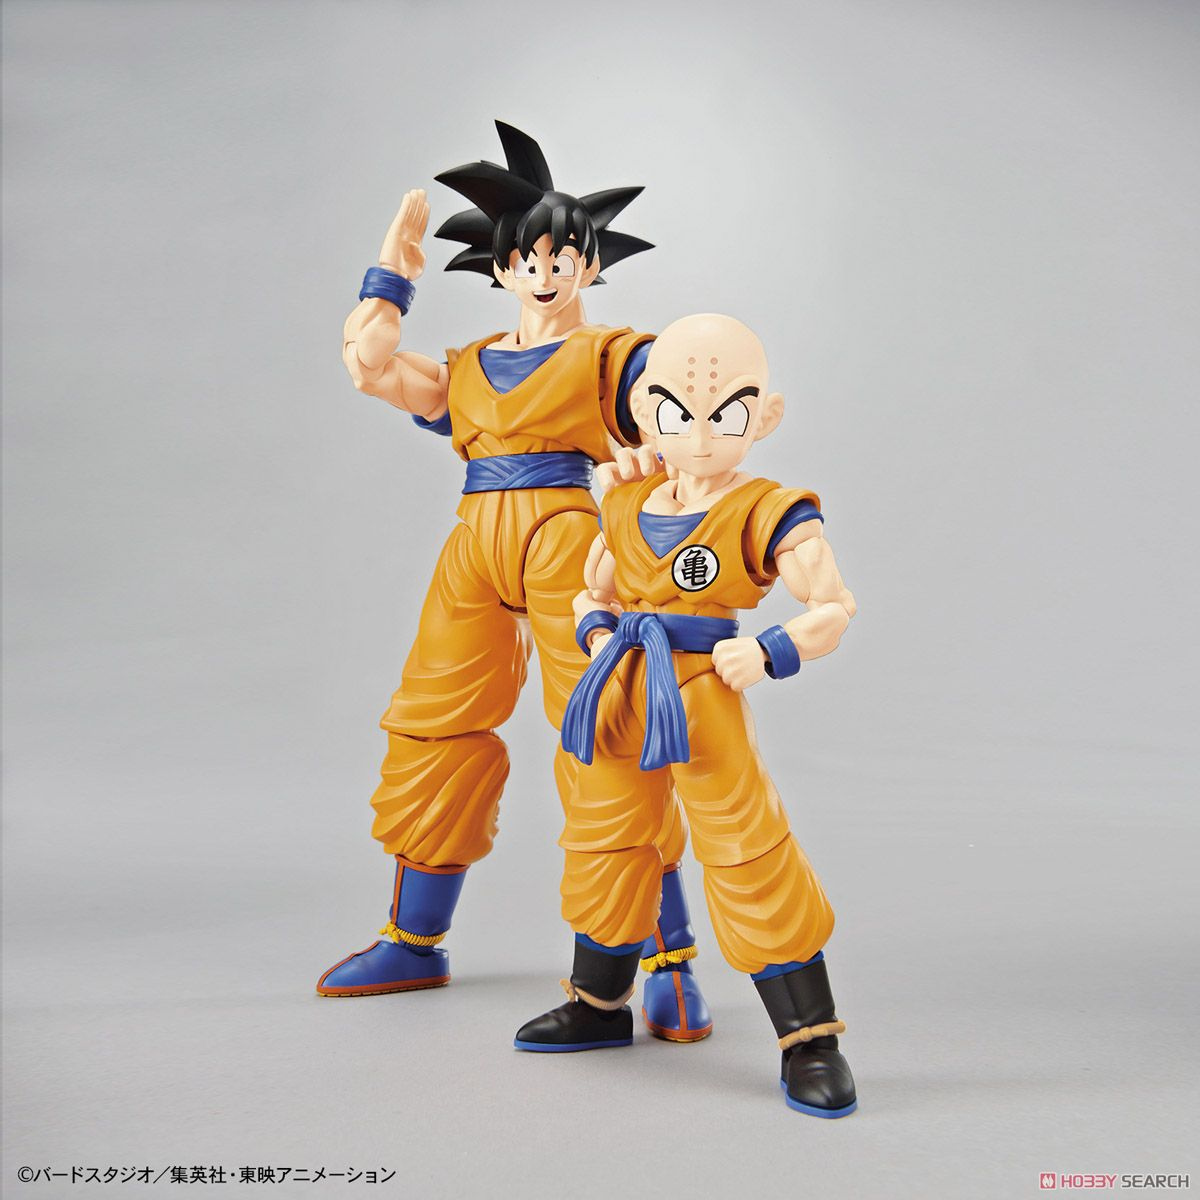 Figure-rise Standard Son Goku & Klilyn DX Set (Plastic model) Item picture8